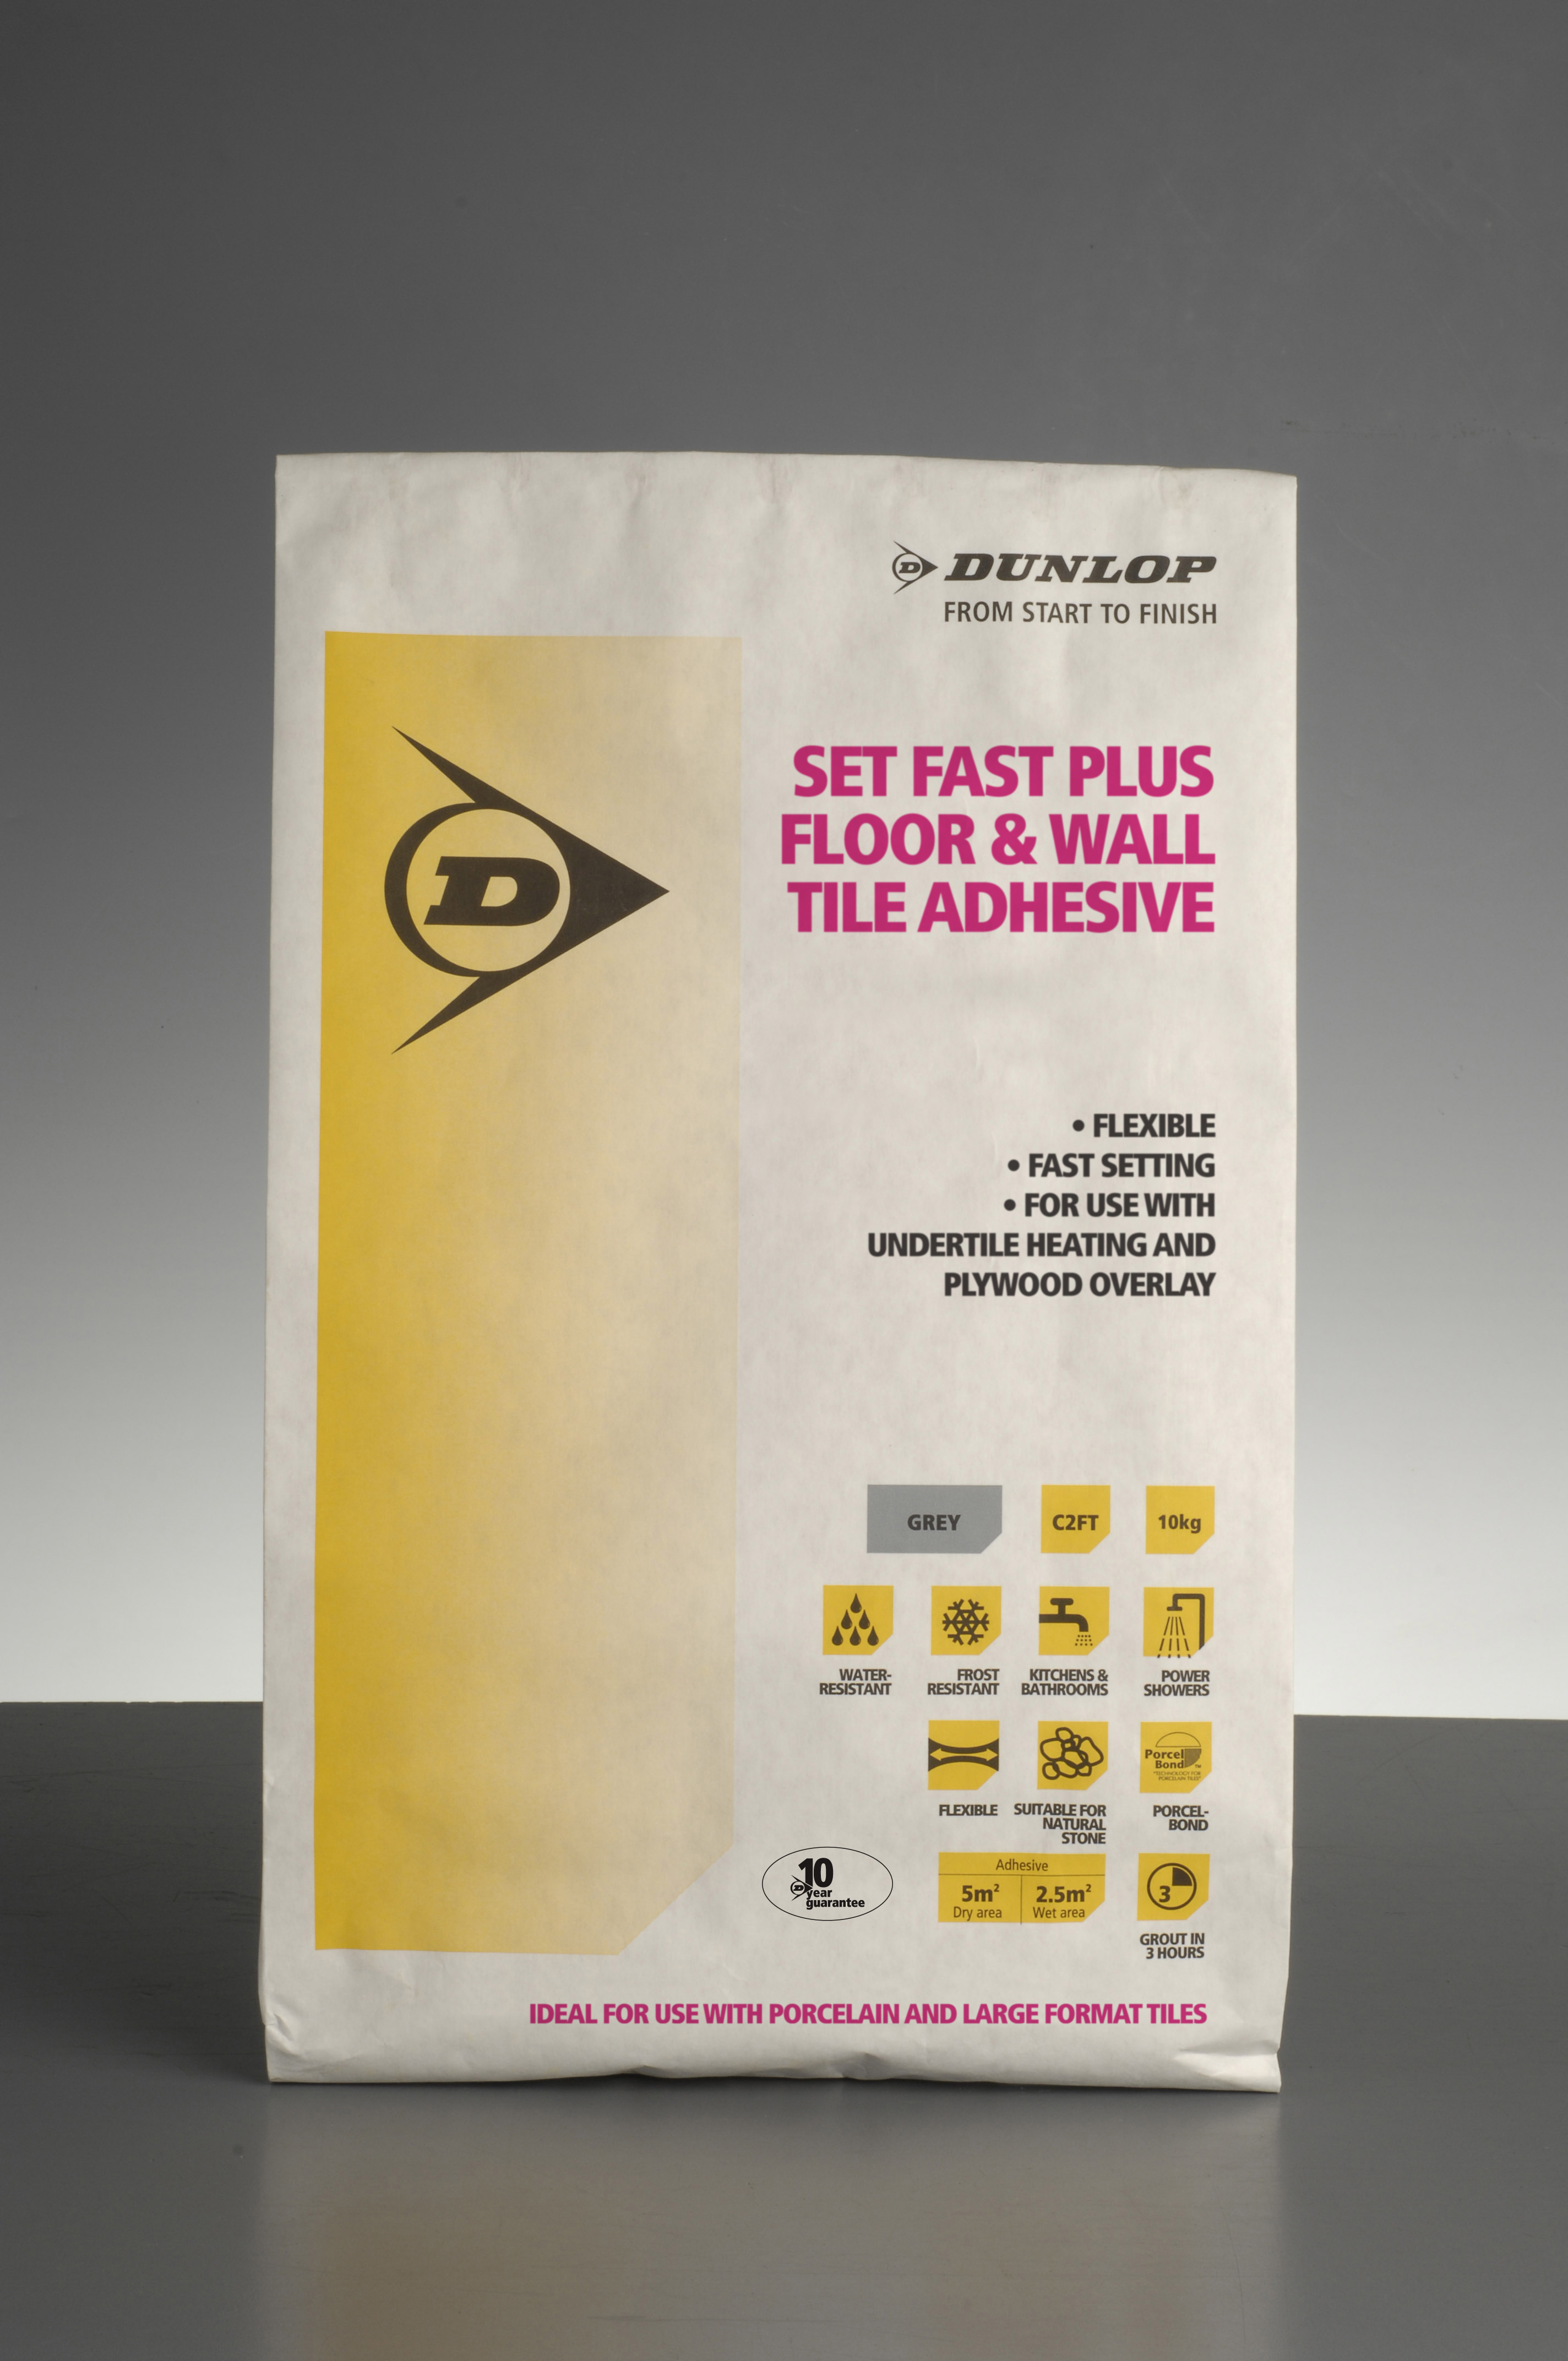 Dunlop Adhesives' Set Fast Plus ticks all the boxes